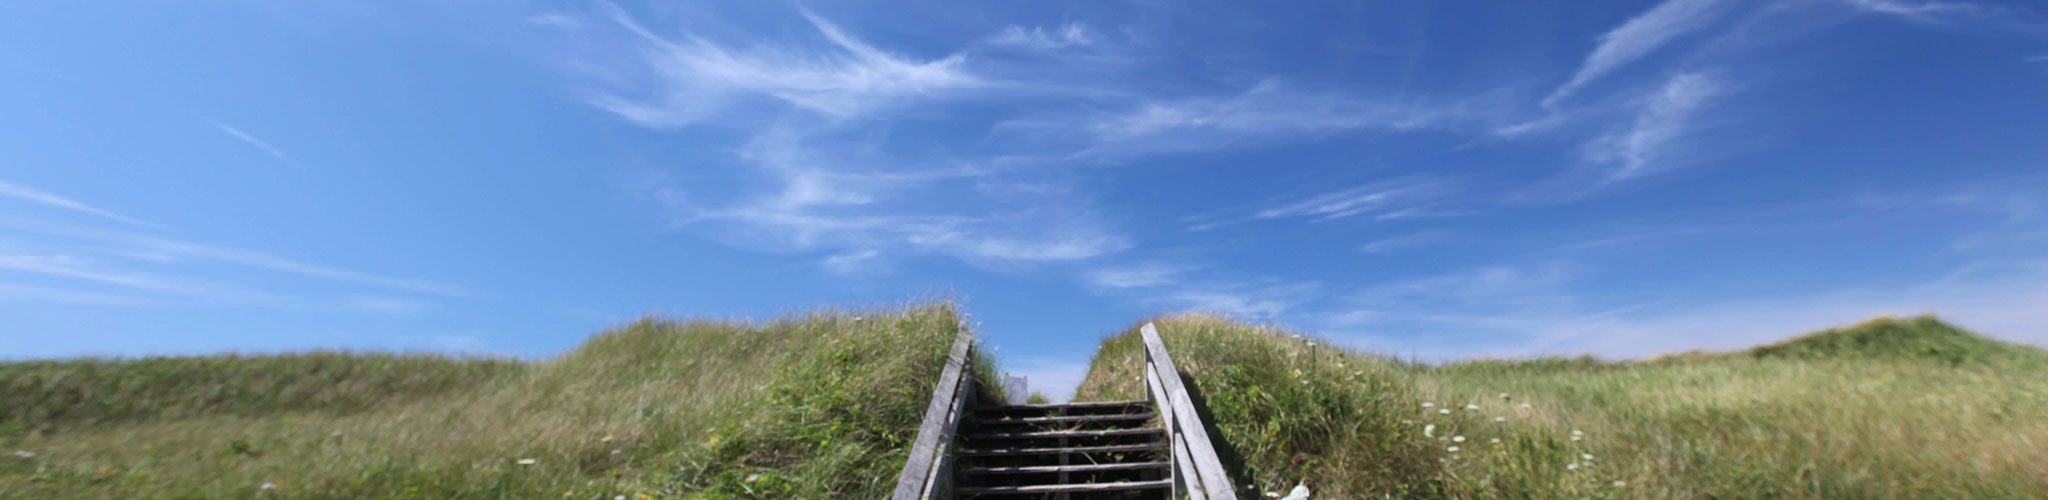 Steps leading into tall beach grass with clear blue skies in the background